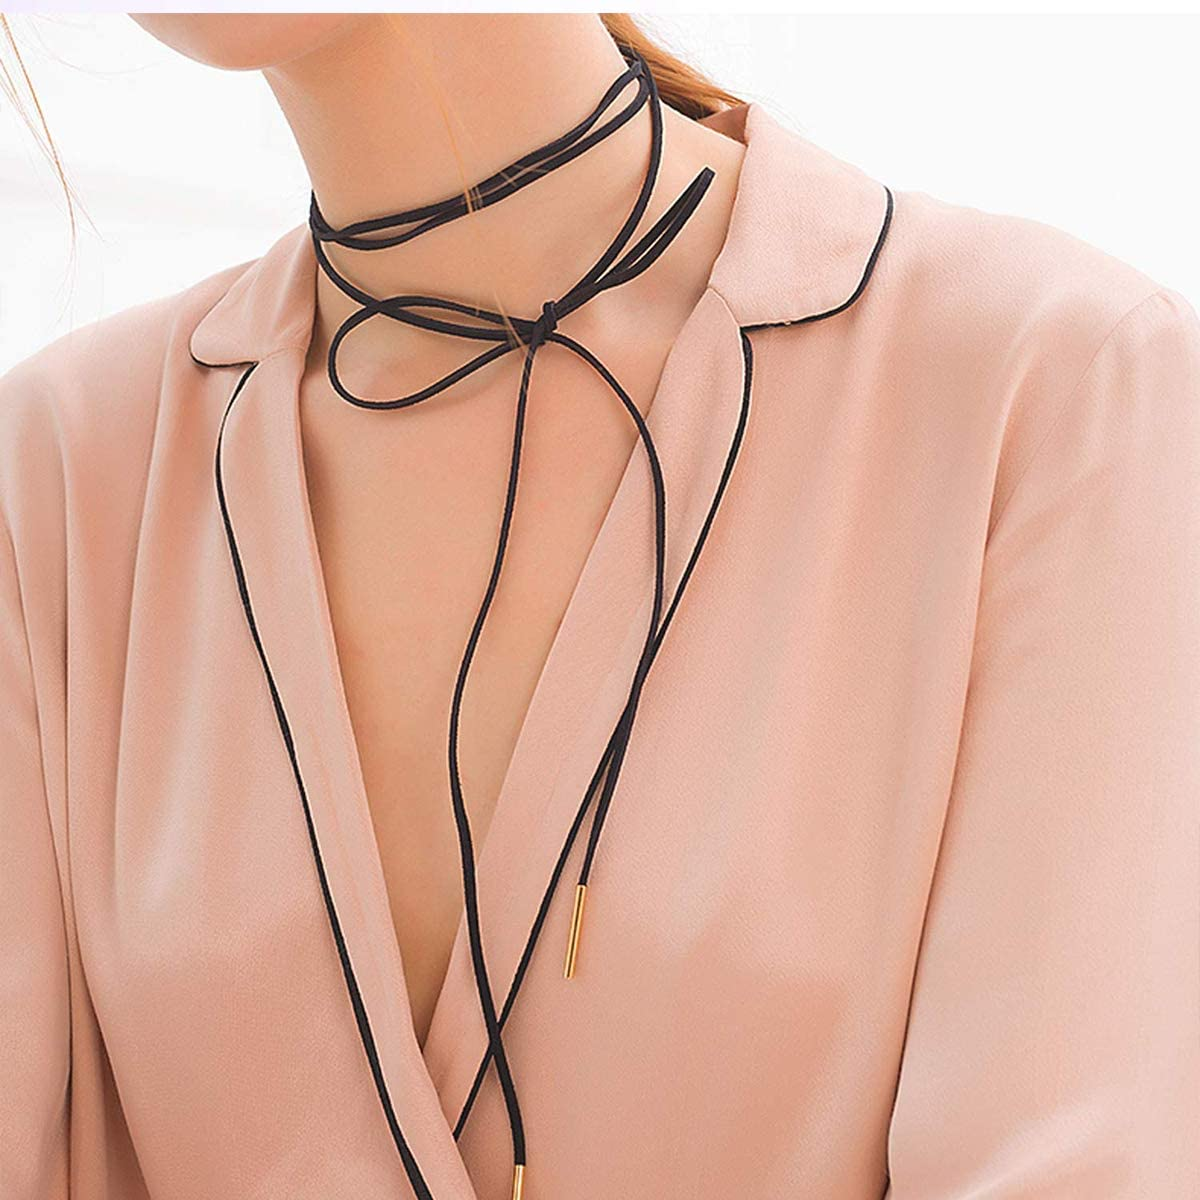 3 mm, 3 Colors 3 Pcs Faux Leather Cord String Suede Rope